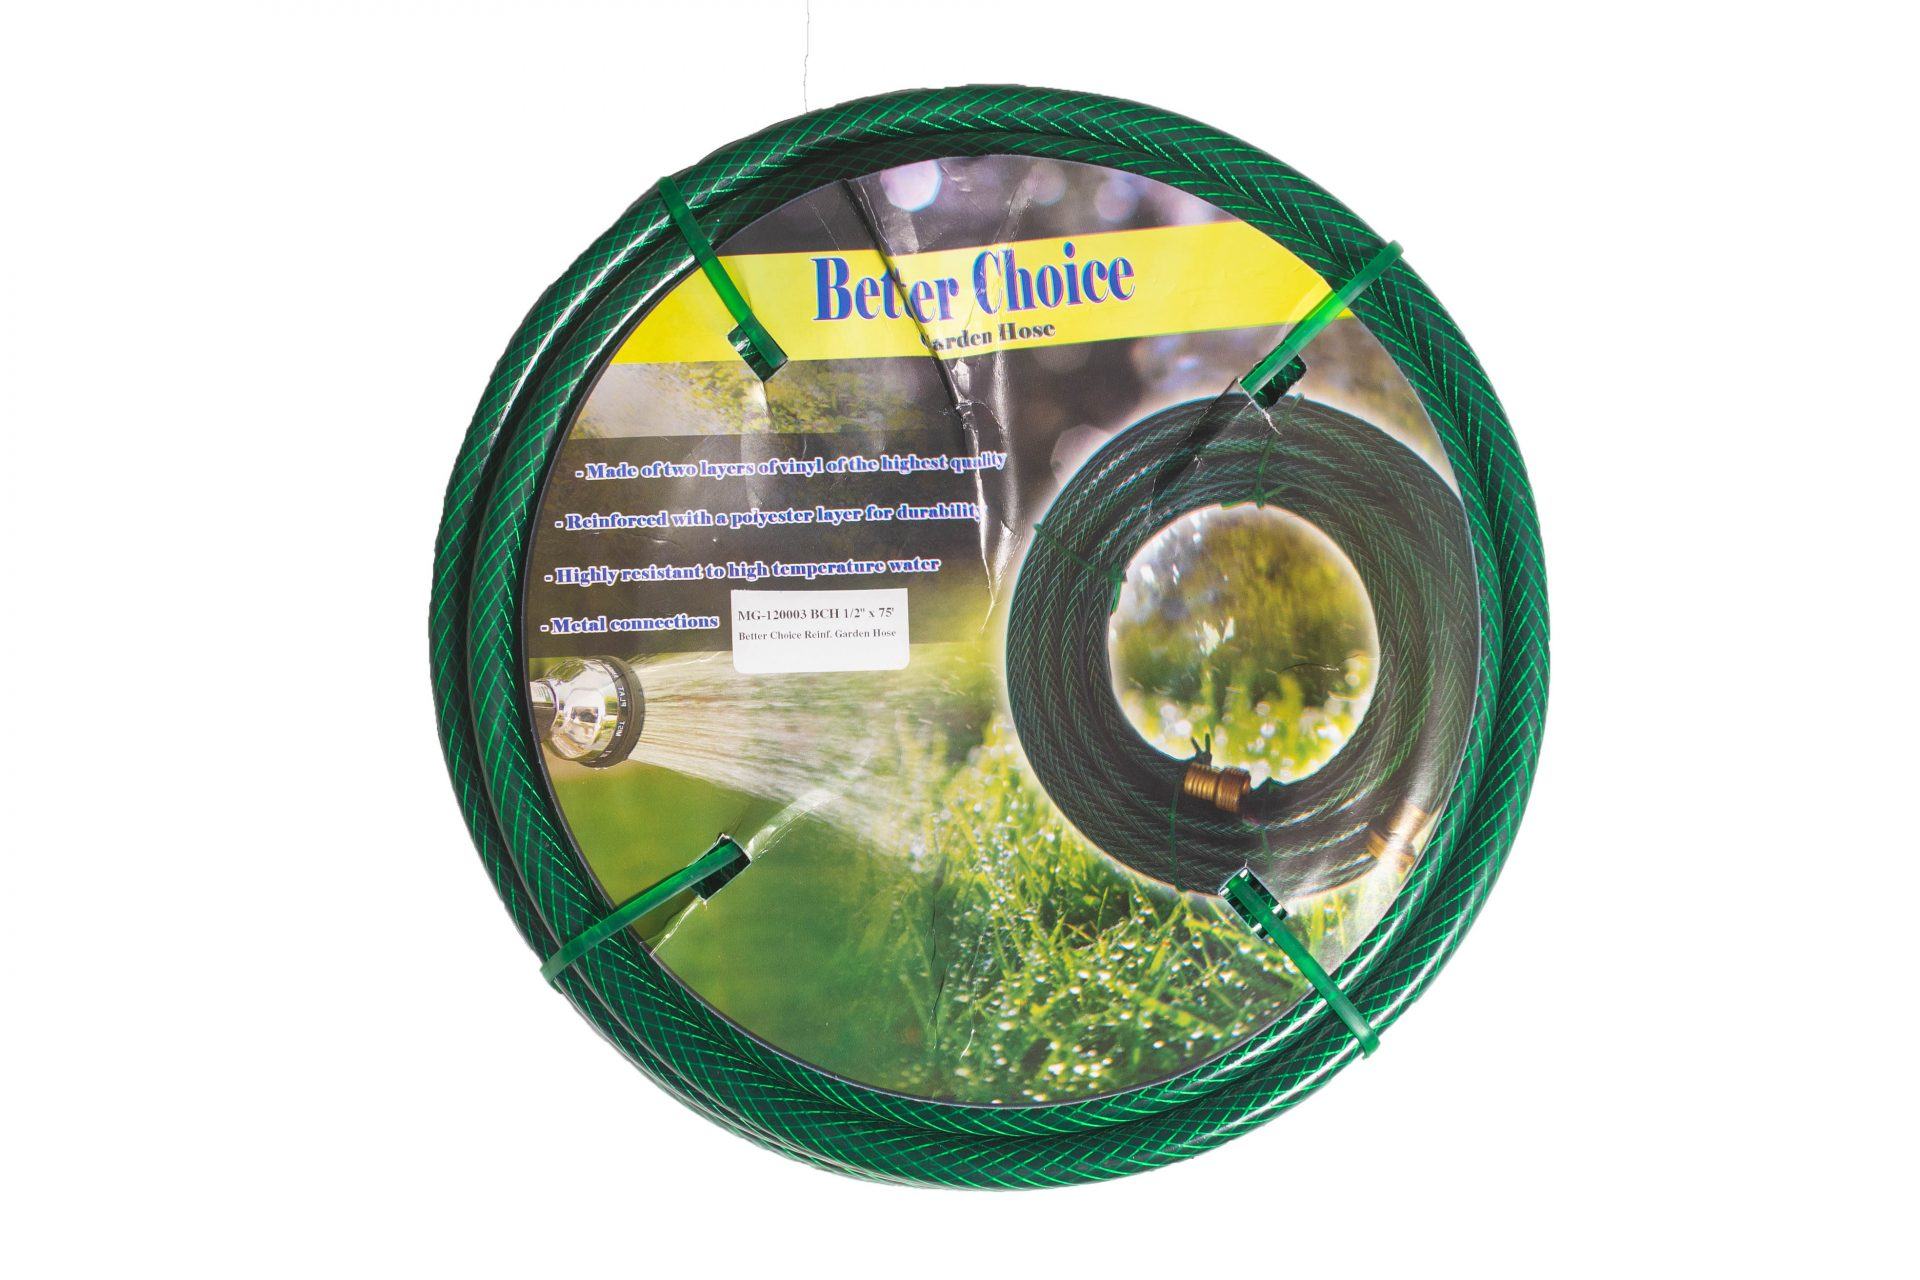 Better Choice Garden Hose